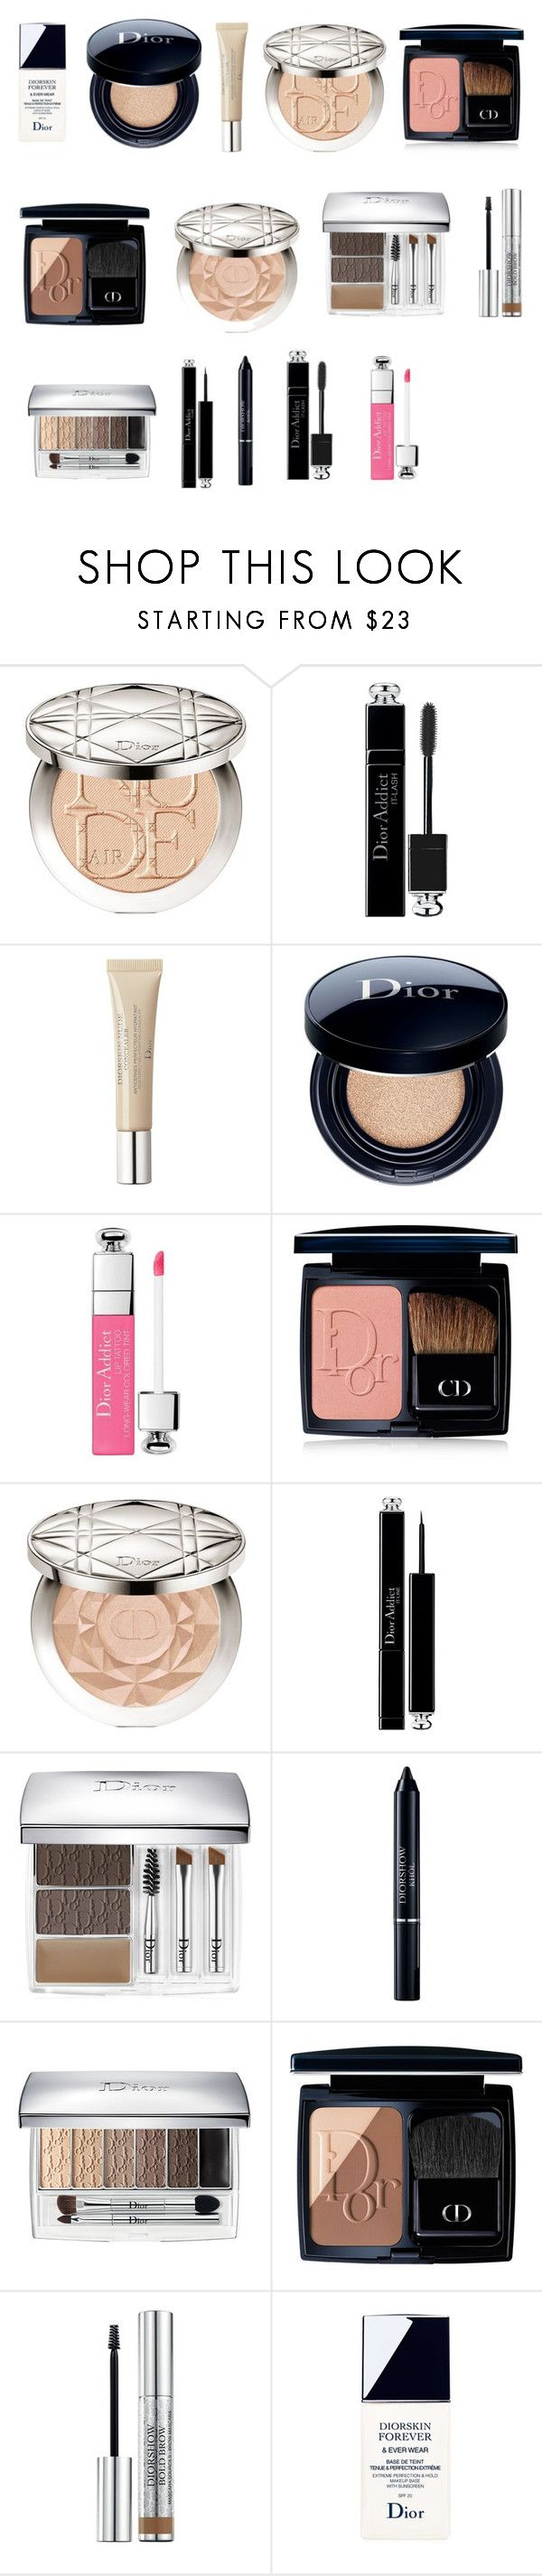 """""""Neutral warm eyes + matte bright pink lips"""" by tyronewelle ❤ liked on Polyvore featuring beauty and Christian Dior"""